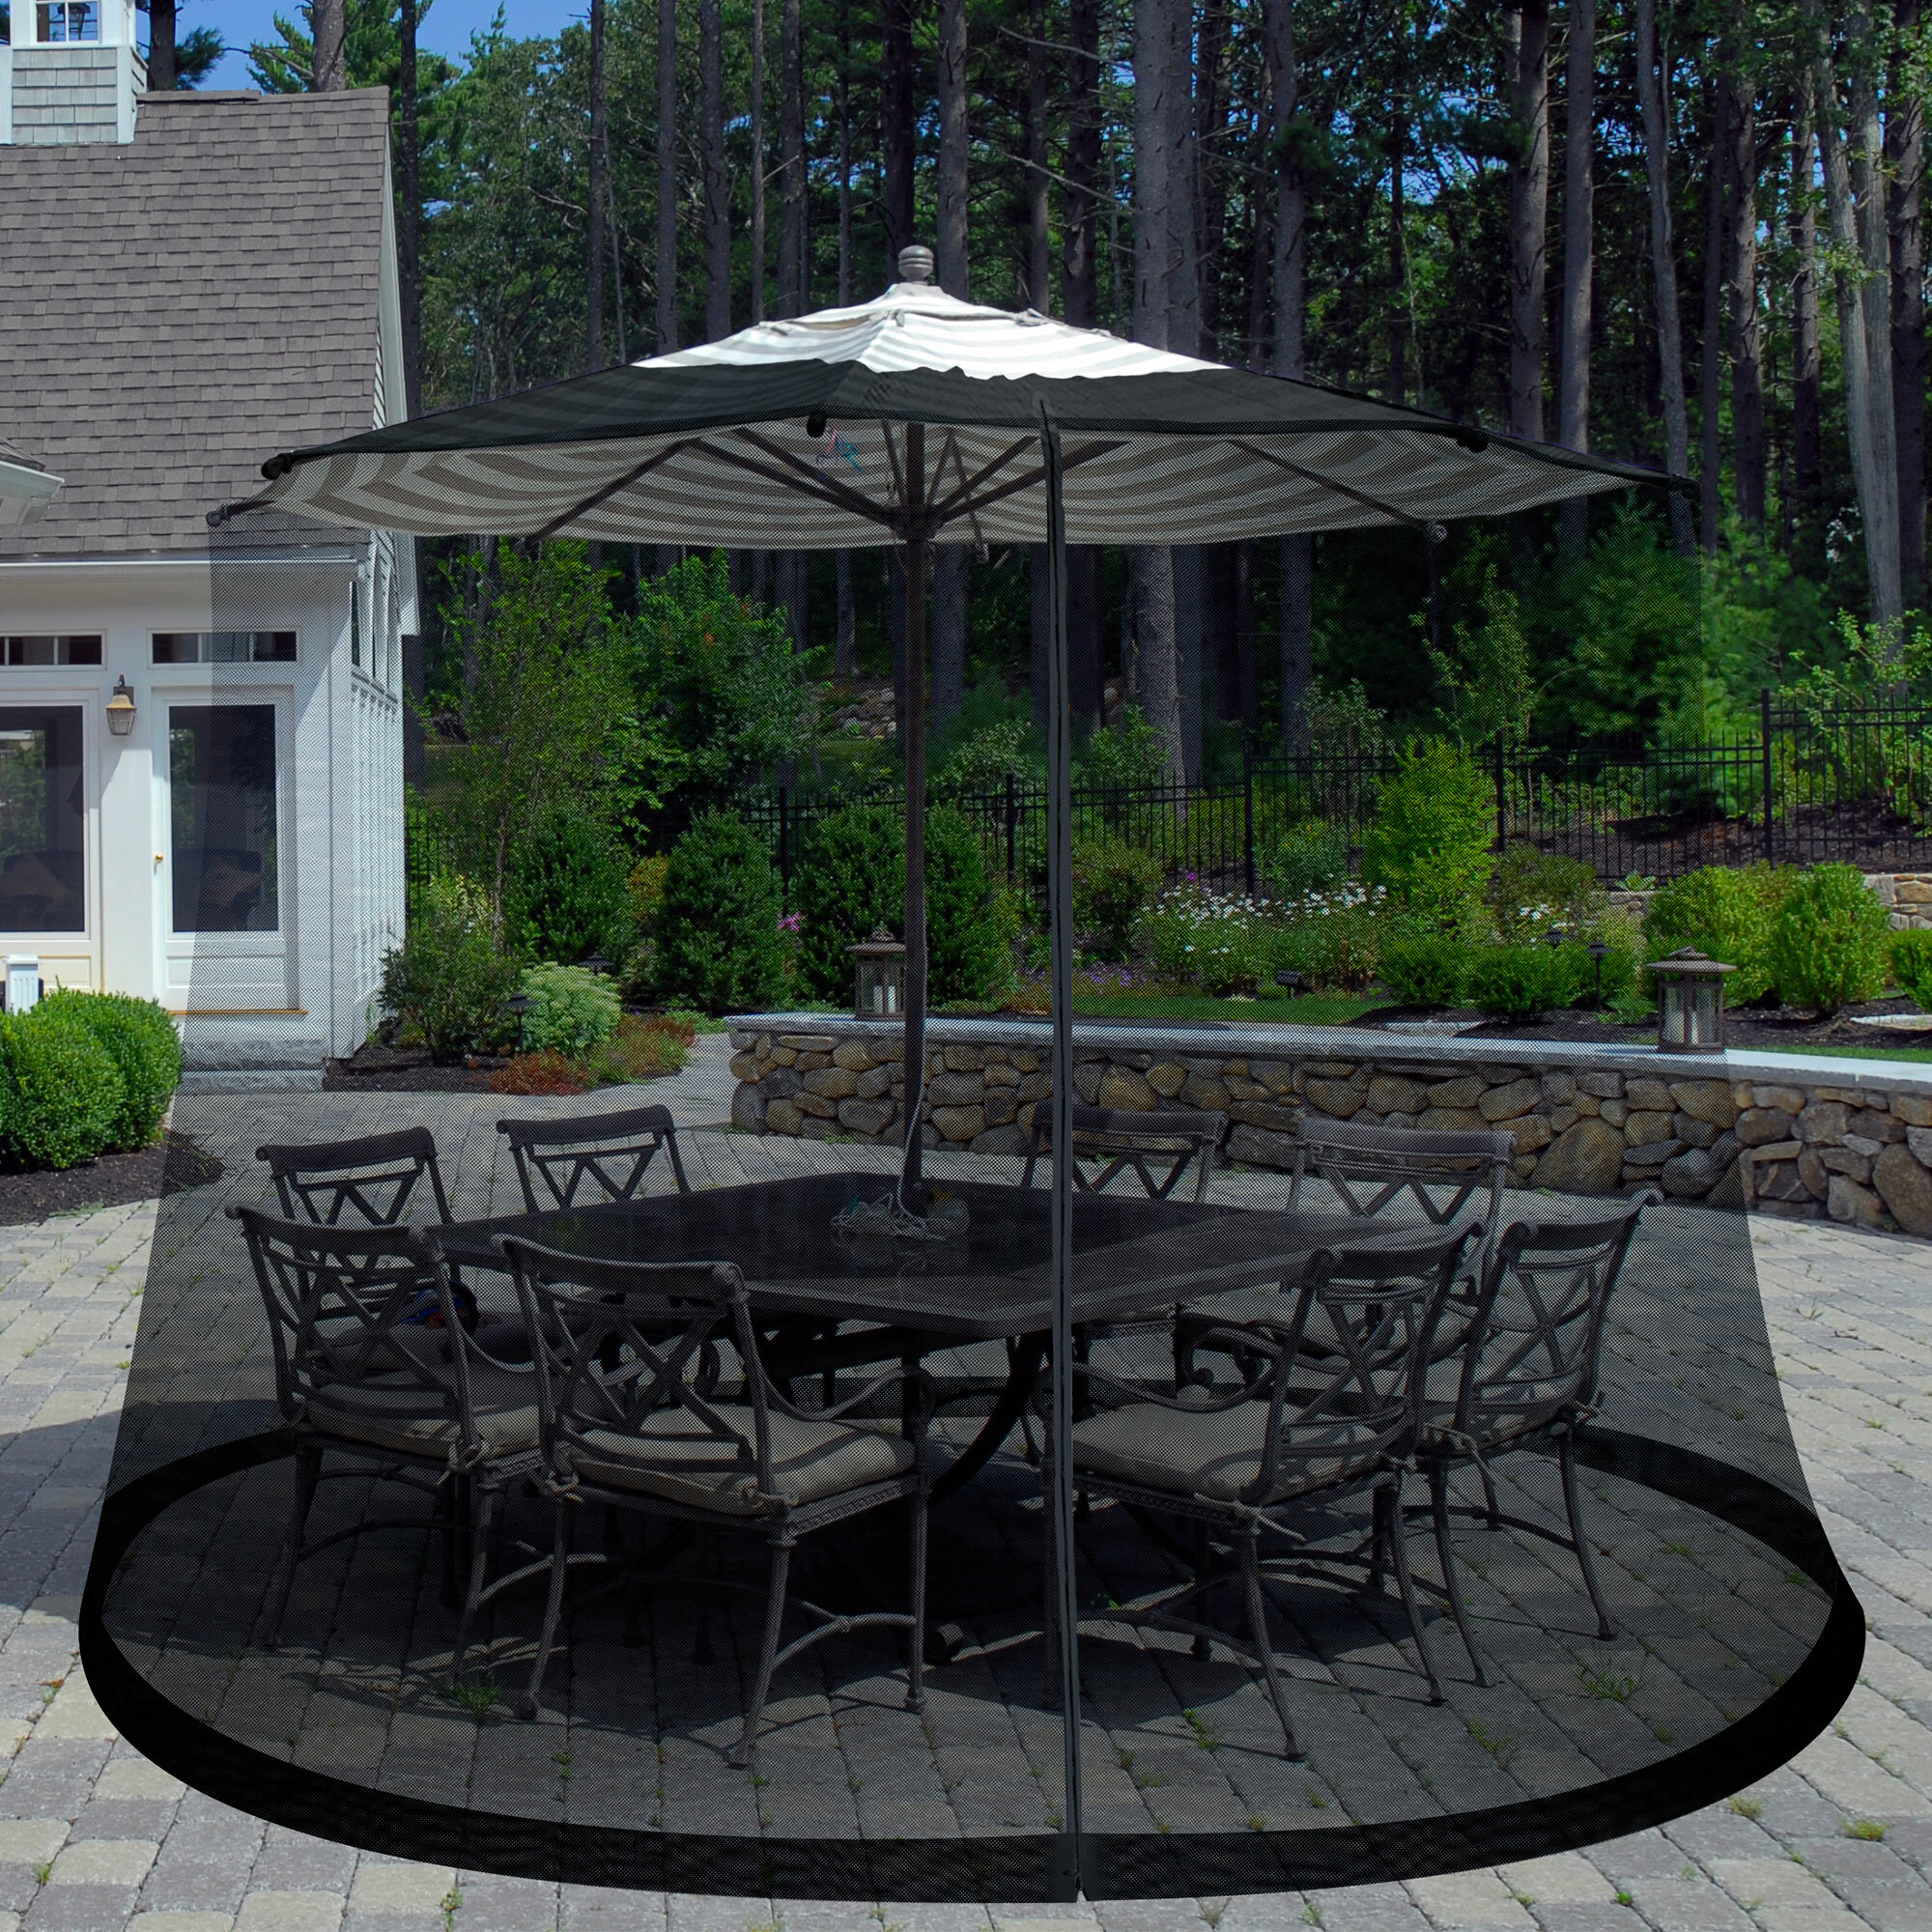 com bellevuelittletheatre of canopy ribs unique rectangular twin products patio choice umbrella aluminum best fresh outdoor replacement